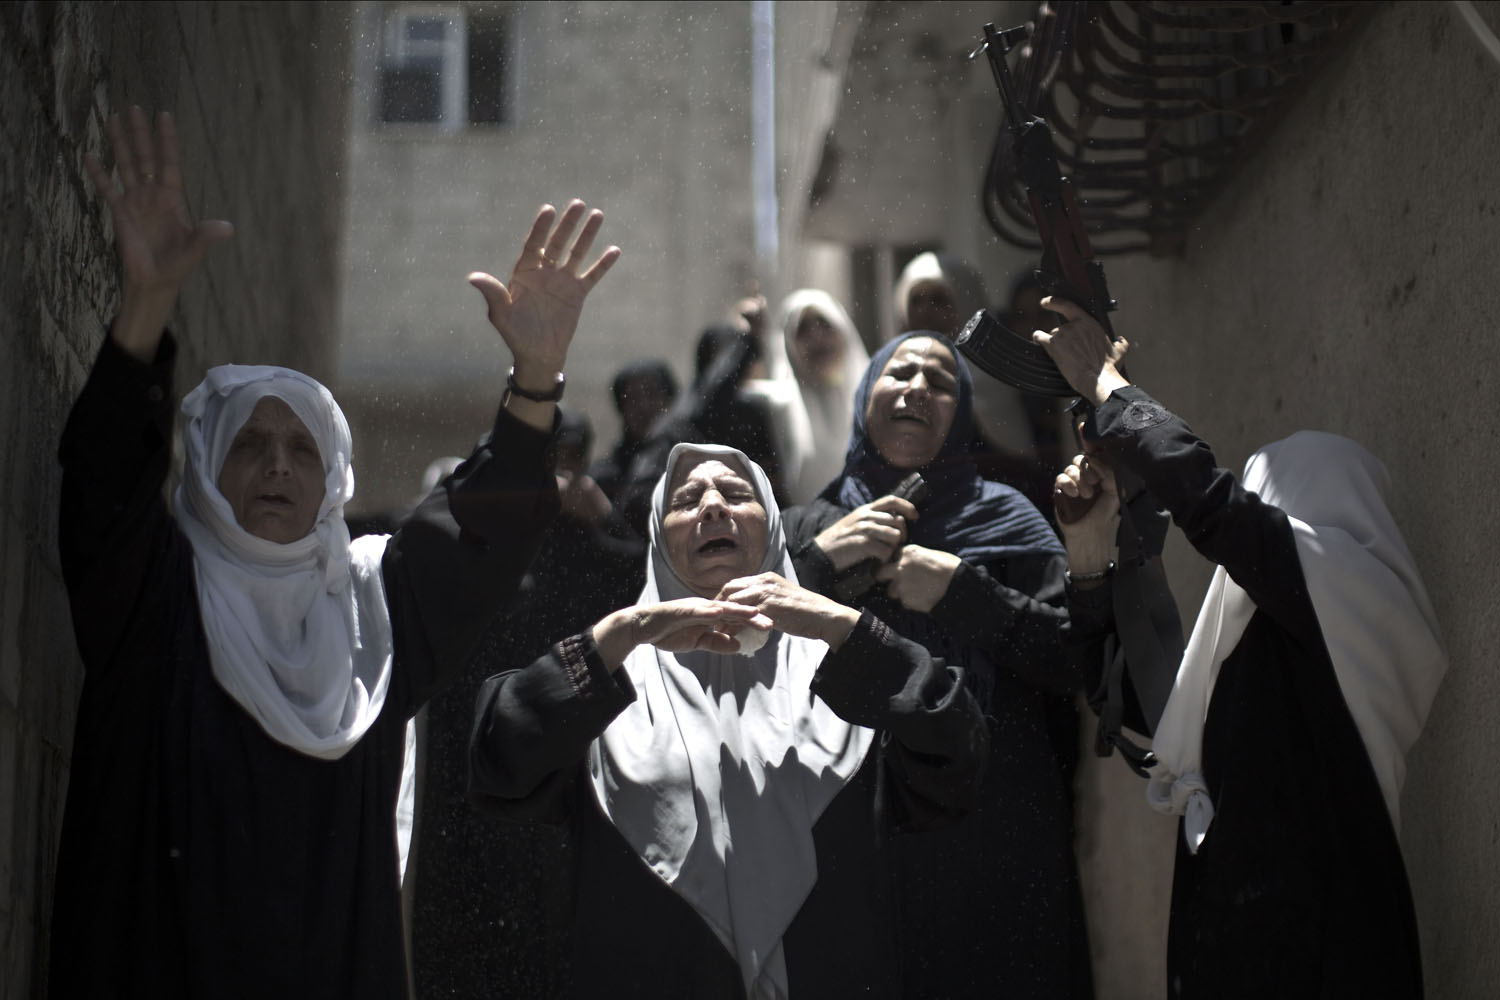 Jun. 21, 2014.                                Relatives holding a weapon mourn during the funeral of Ibrahim al-Arqan, a Palestinian member of the Ezzedine al-Qassam Brigades, the military wing of Hamas, who died two days ago after an explosion caused the collapse of a tunnel under the Israeli border, on  in Gaza City.